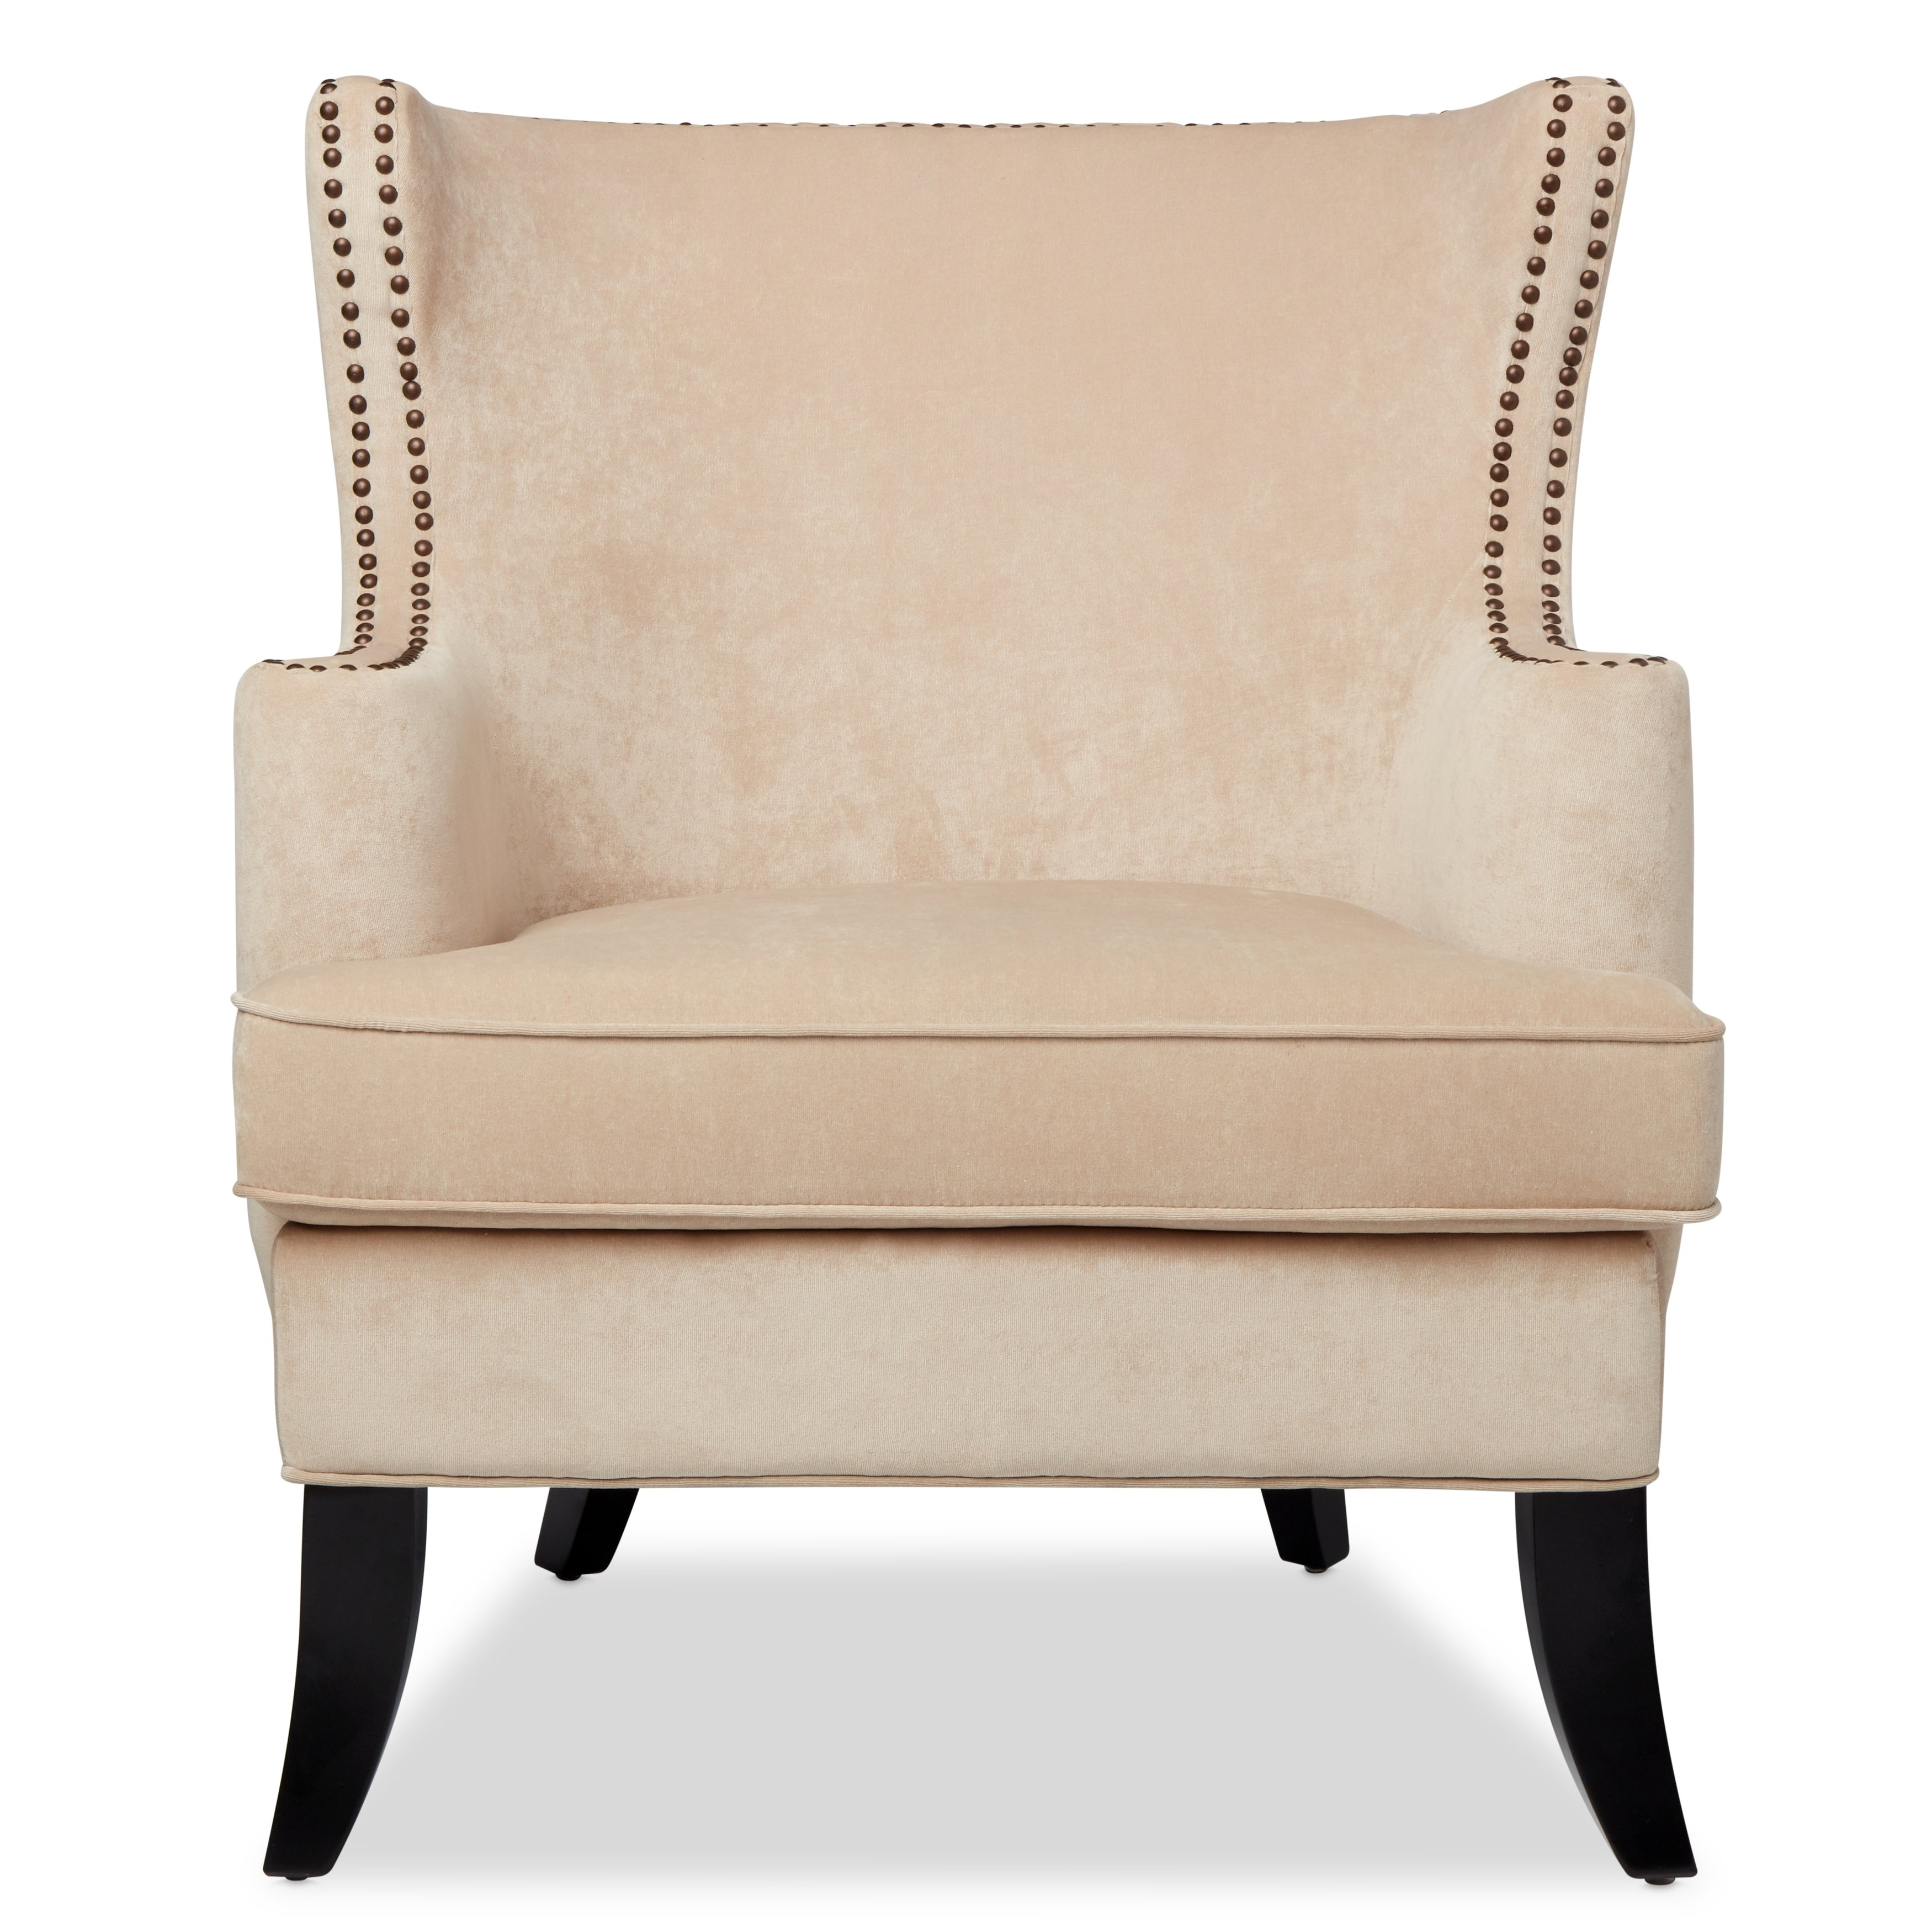 Beau Shop Abbyson Lauren Beige Velvet Nailhead Armchair   On Sale   Free  Shipping Today   Overstock.com   10518452